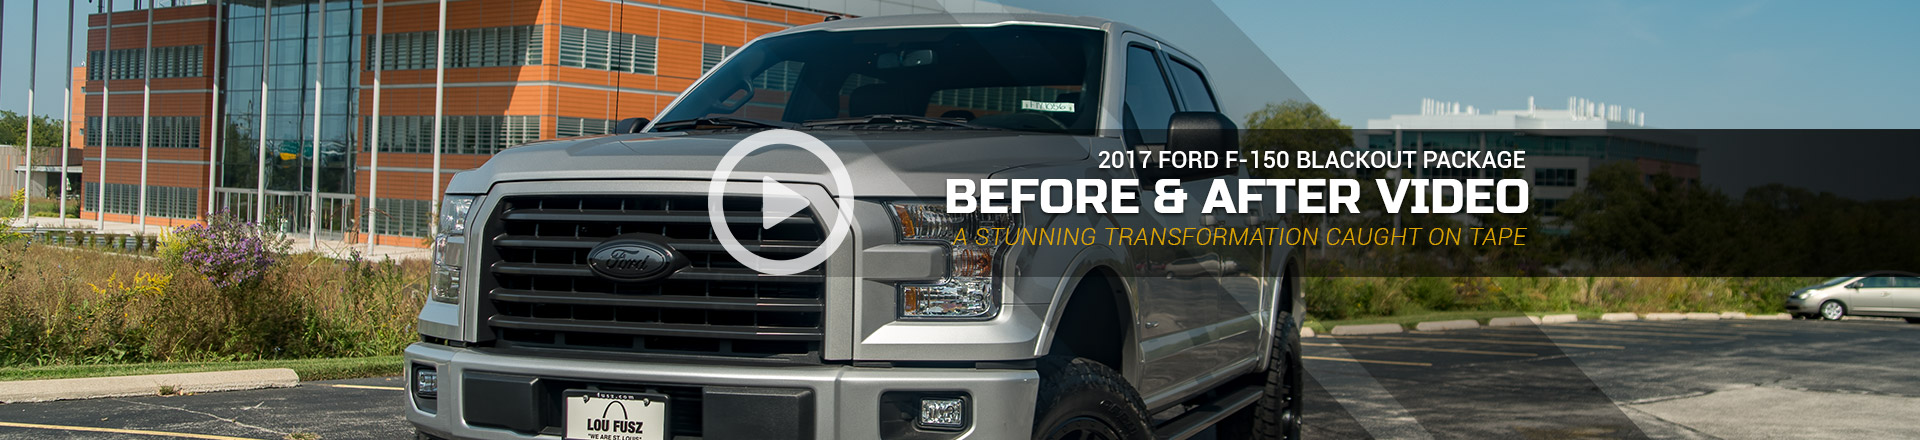 f150-before-after-video